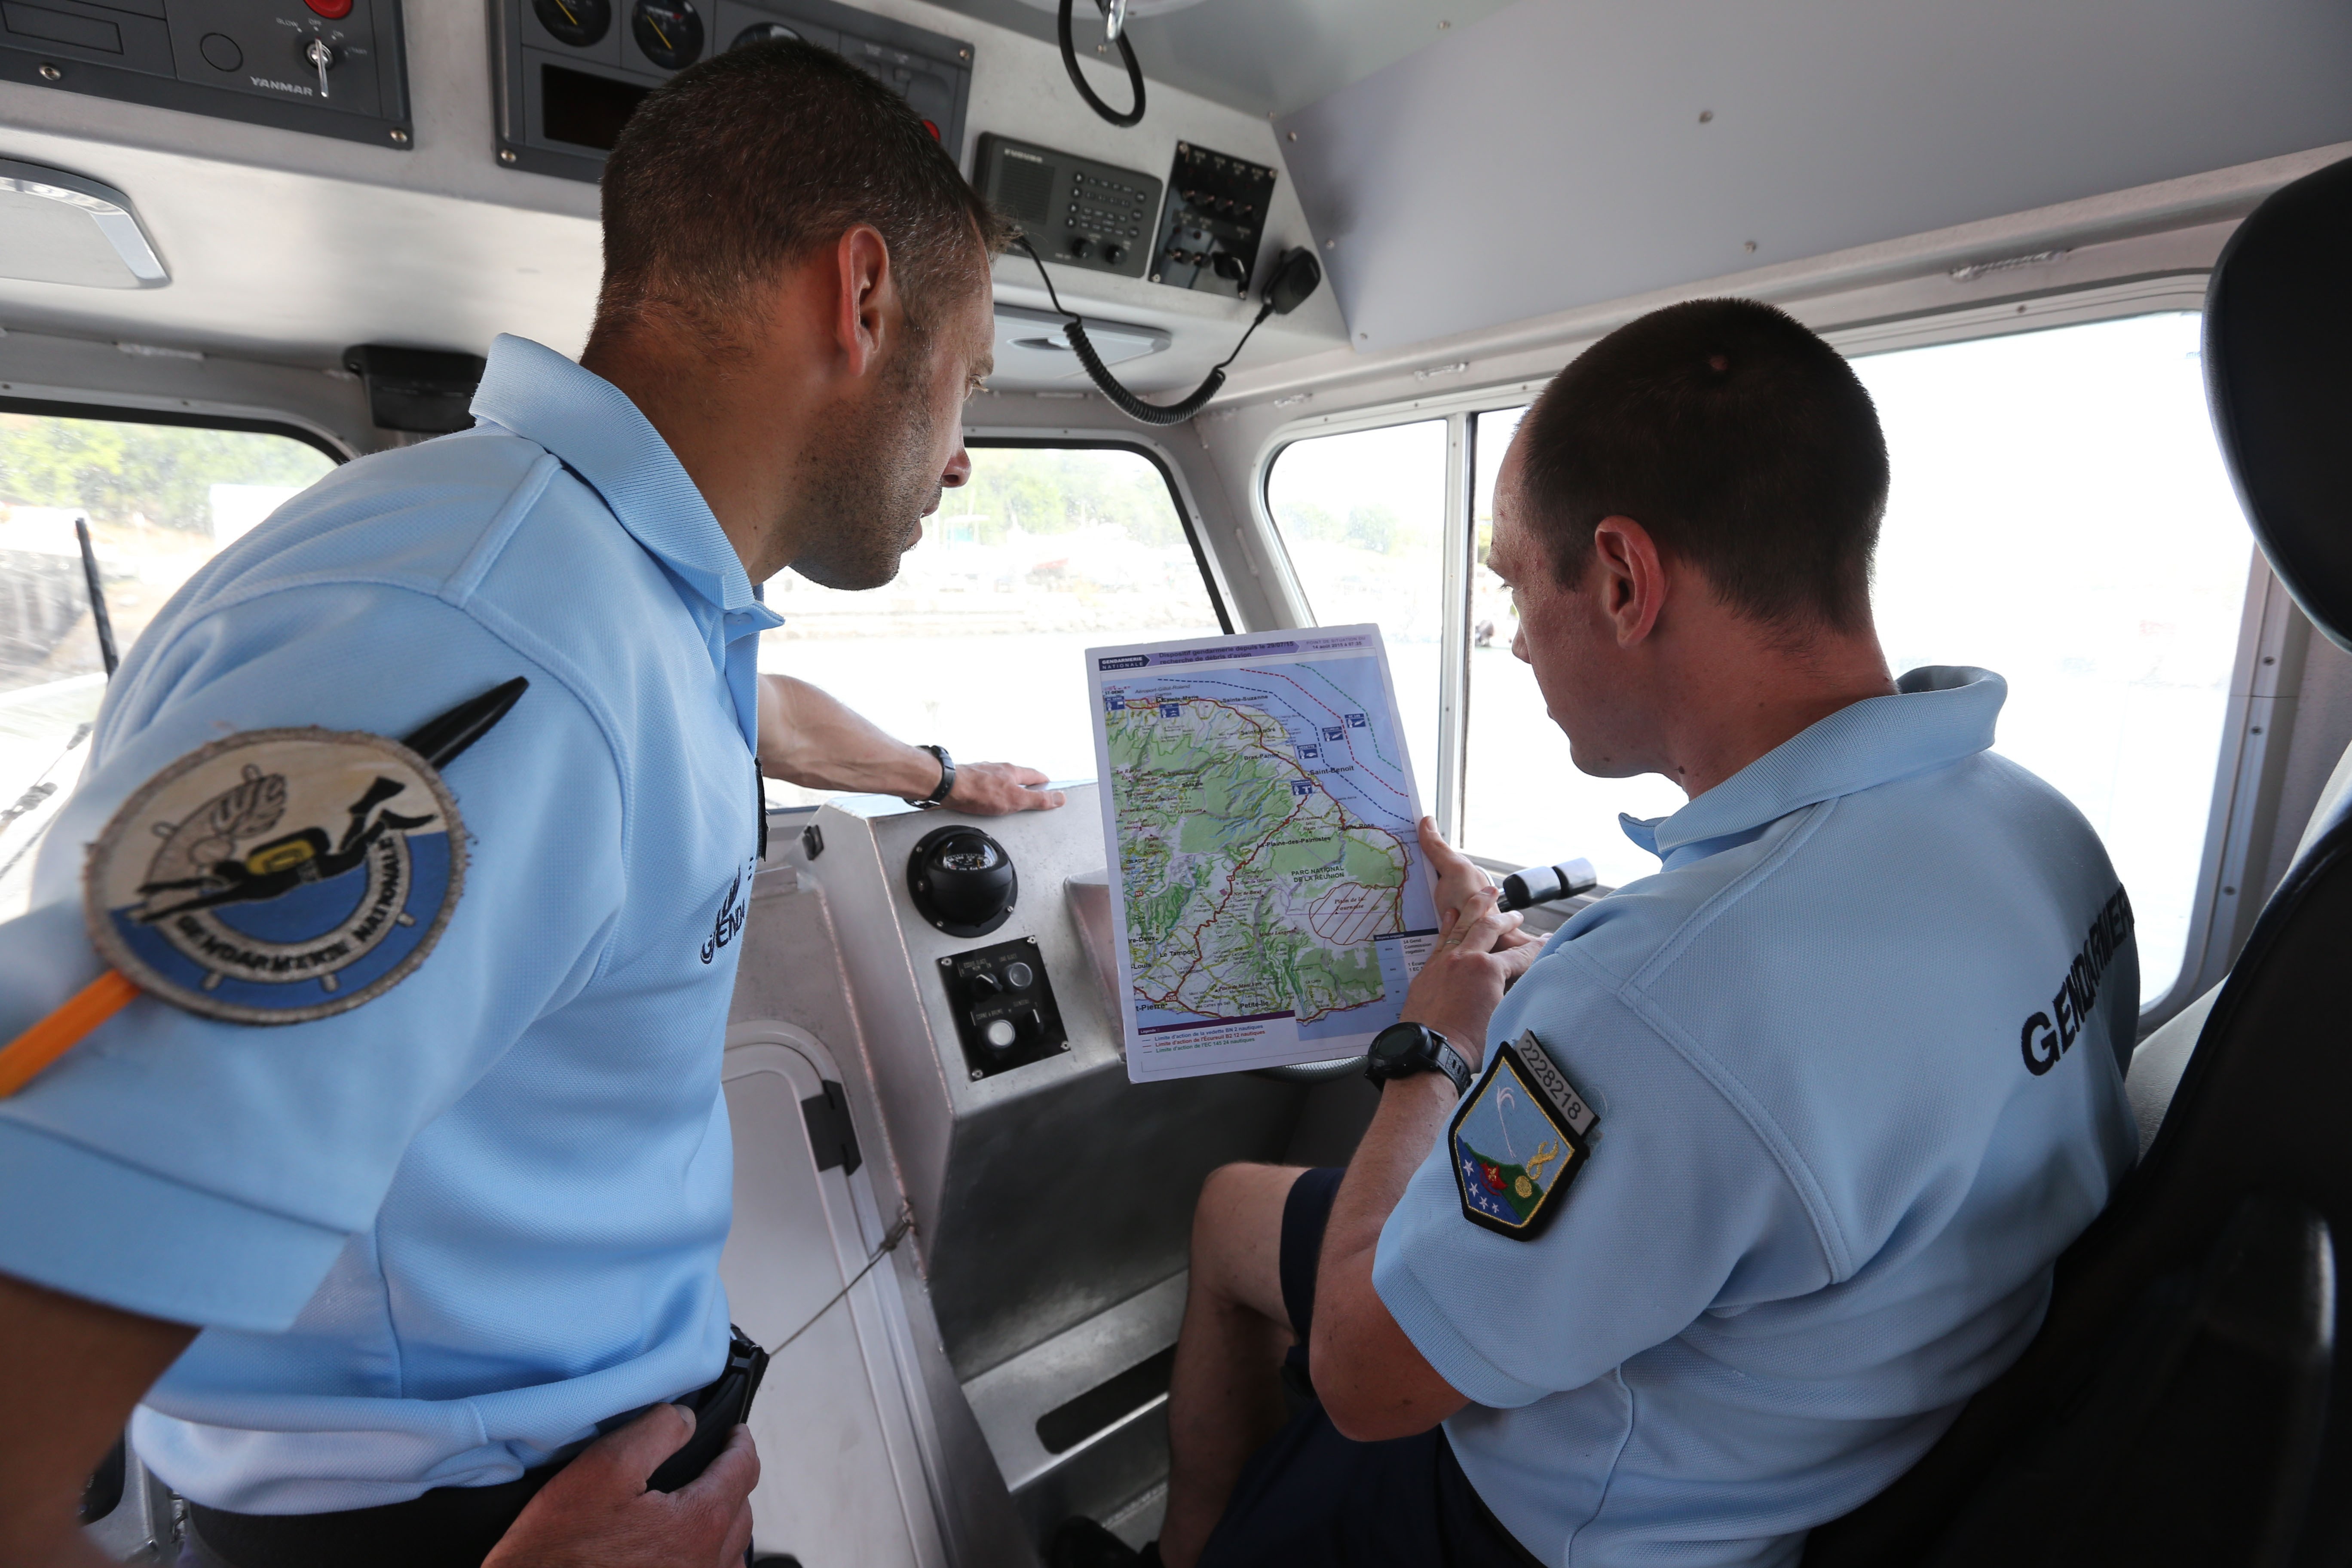 French maritime gendarmes look at a map during the search for wreckage from the missing MH370 plane on the French island of La Reunion on August 14, 2015.